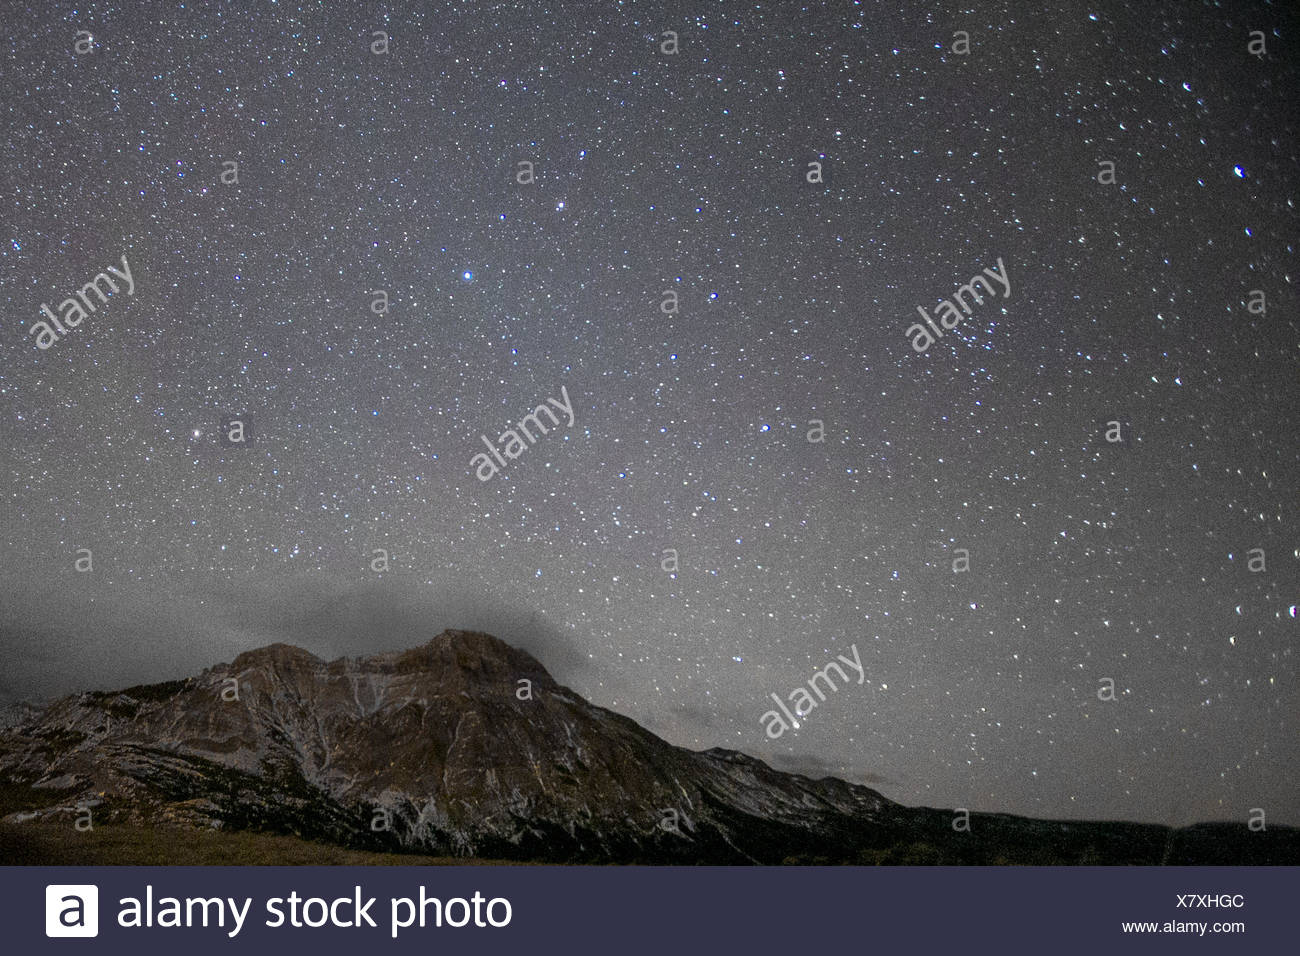 View of stars above mountain - Stock Image